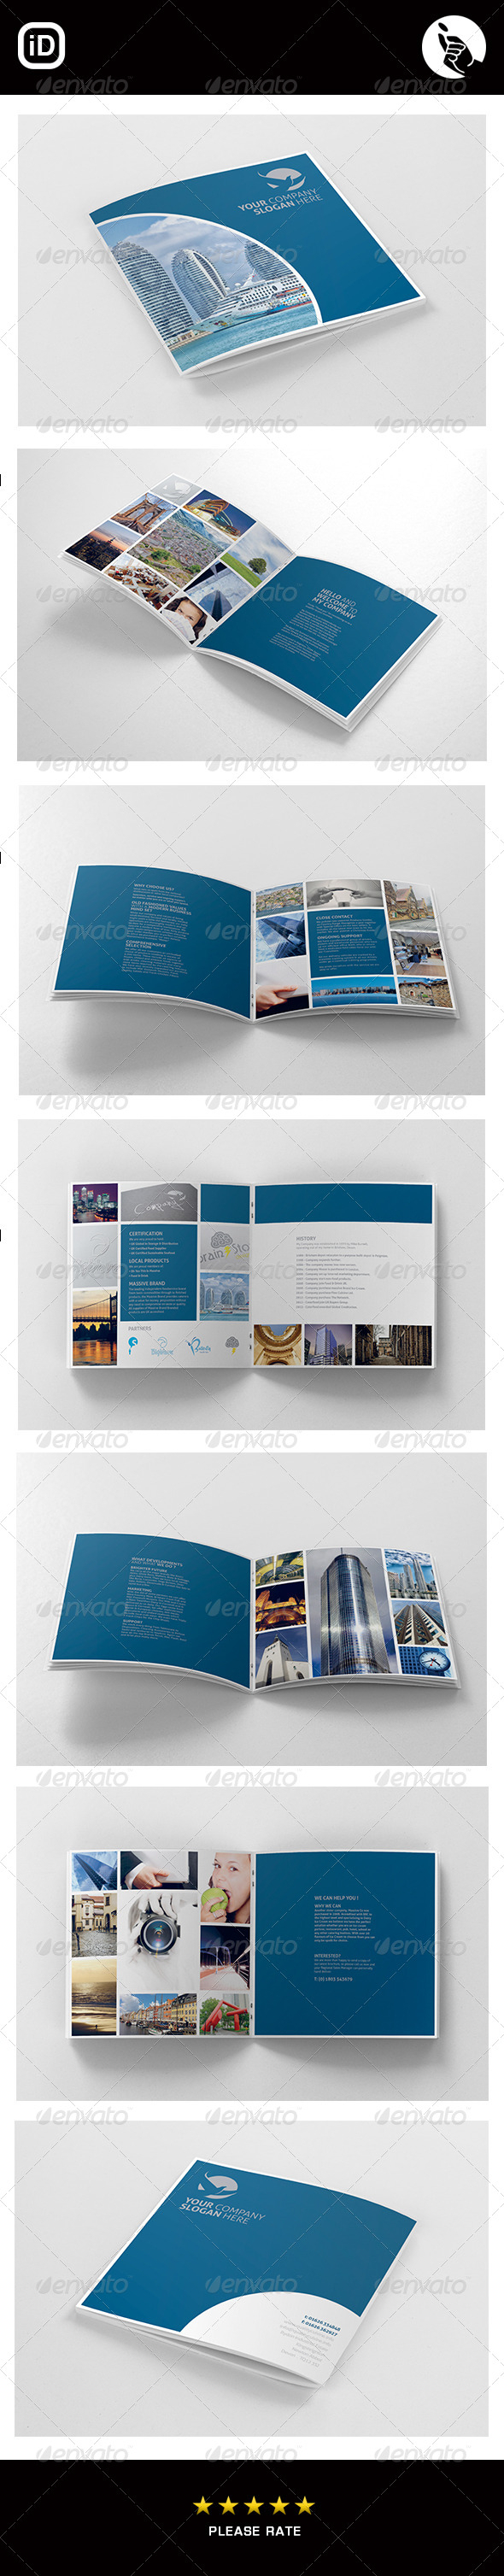 Marketing Brochure Templates From Graphicriver (Page 7) Within 12 Page Brochure Template